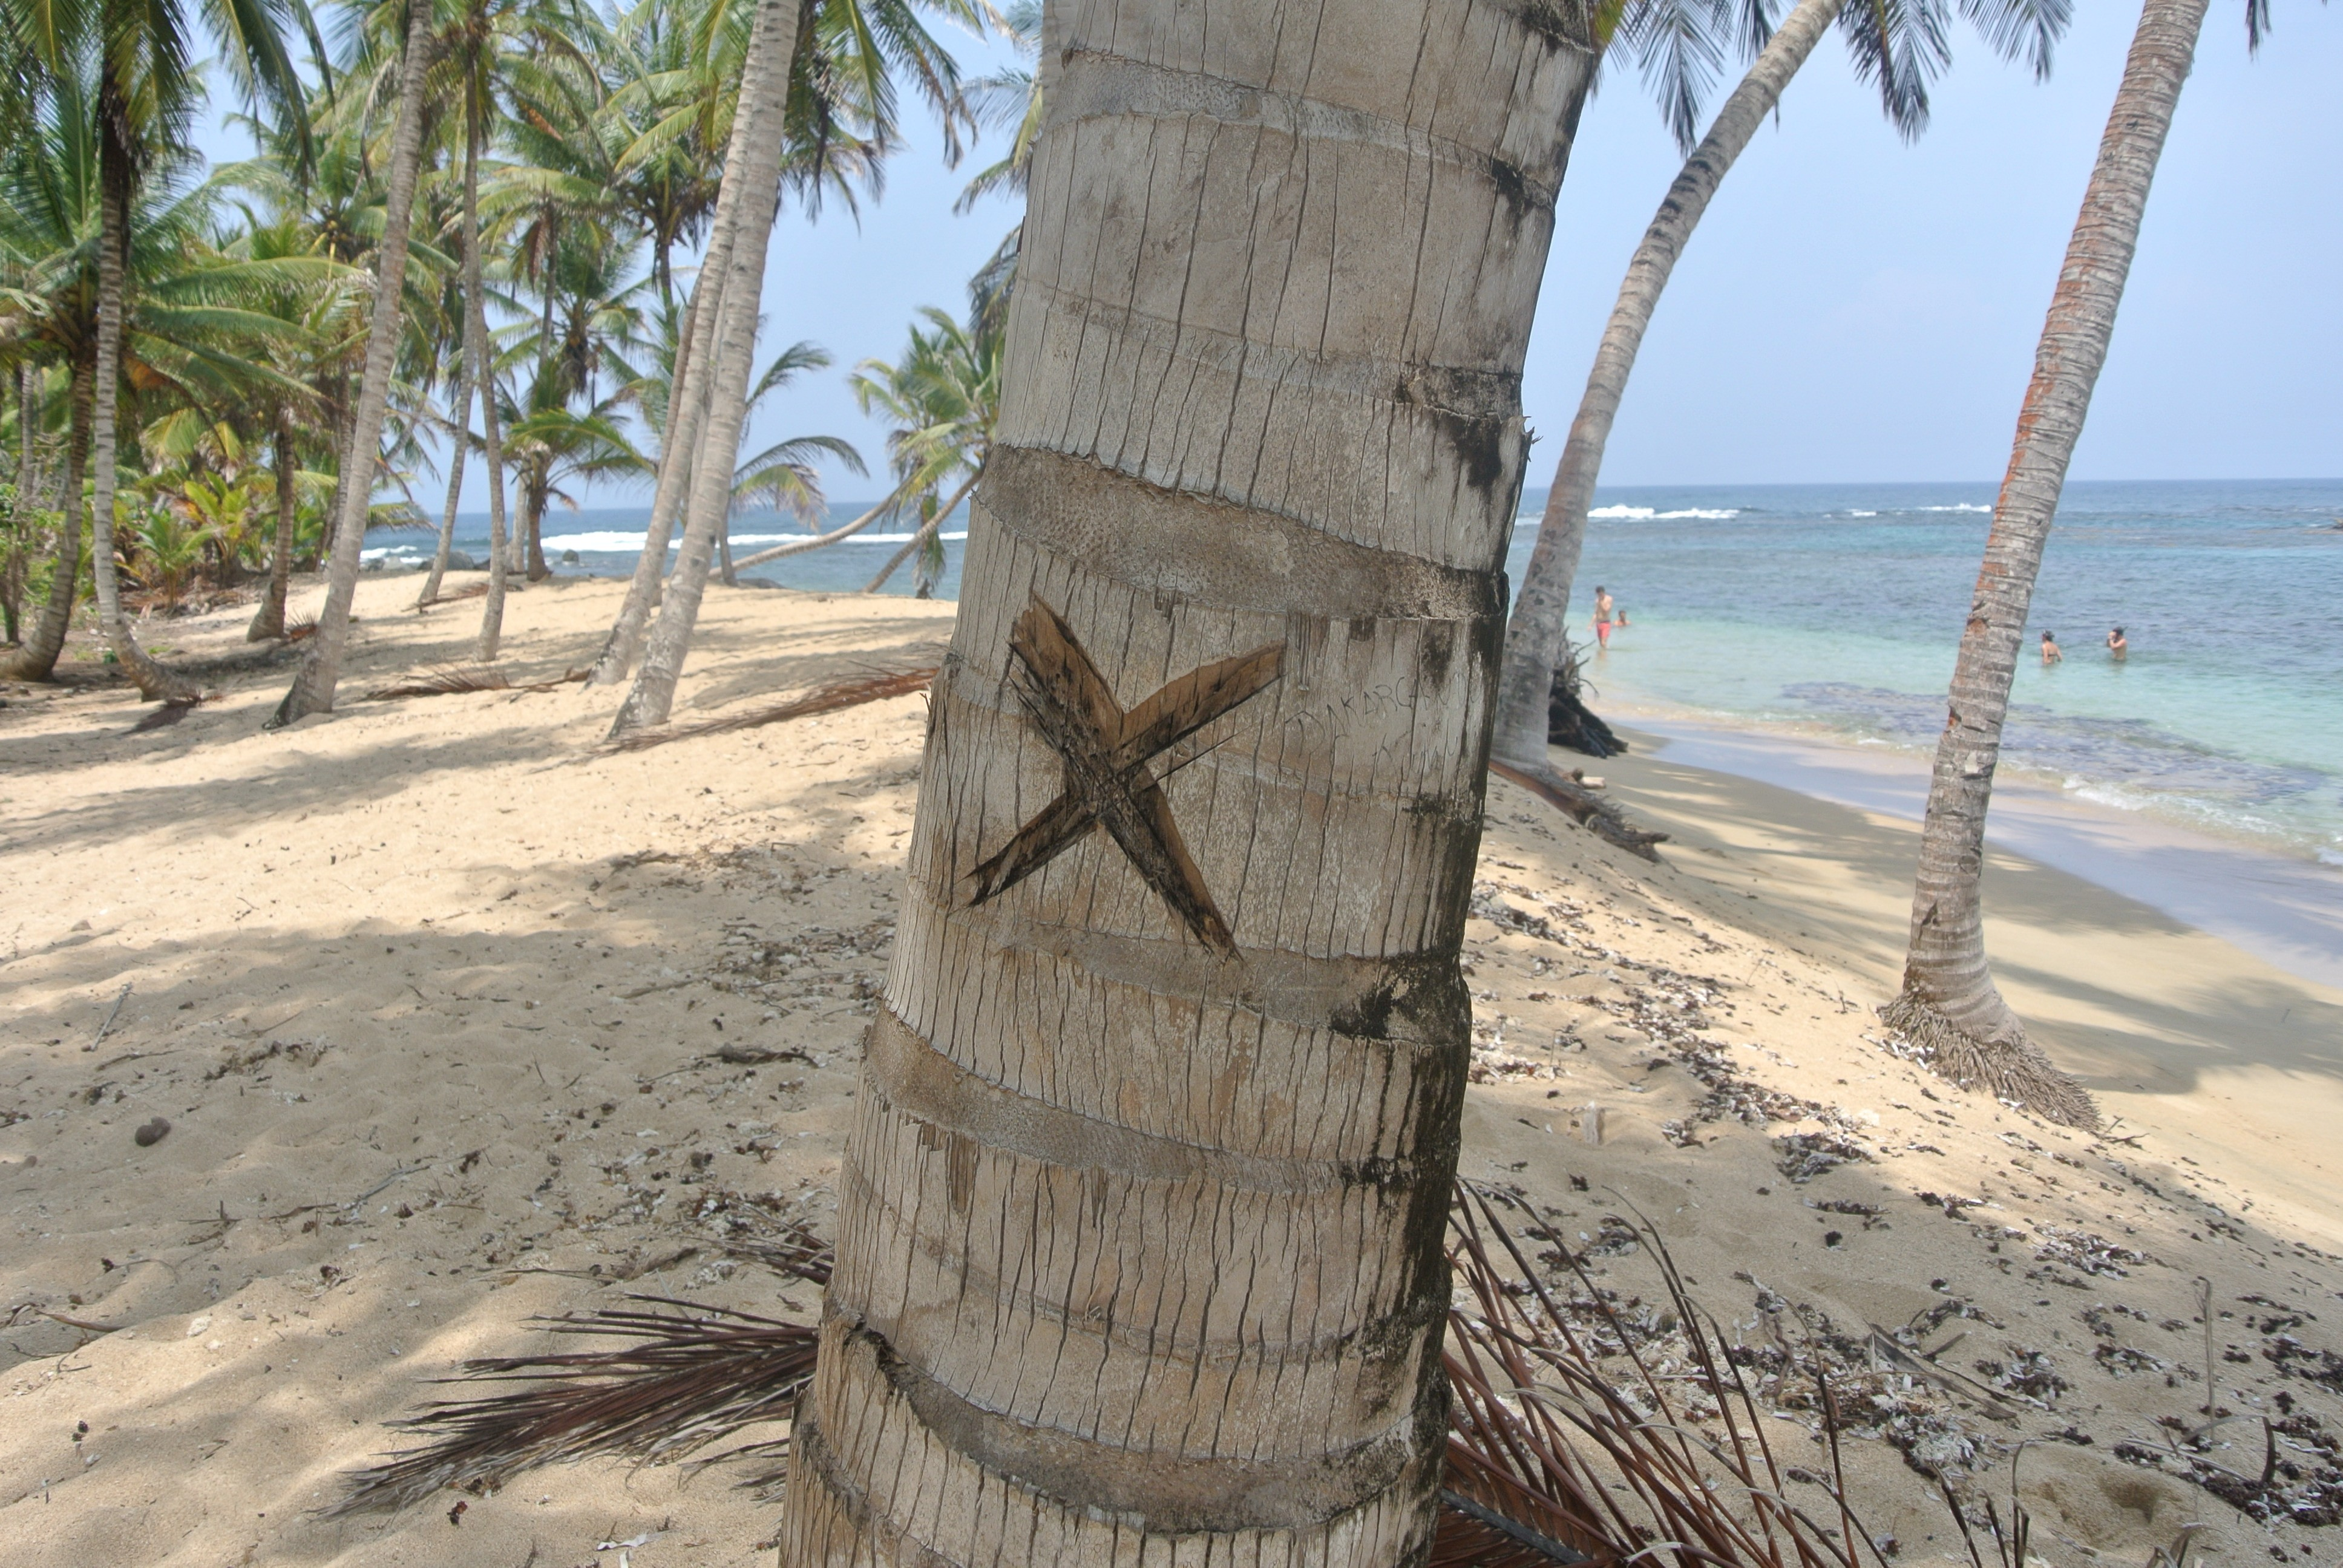 The Kuna Yala Islands in Panama have you feeling like you're a pirate especially when X marks the spot.